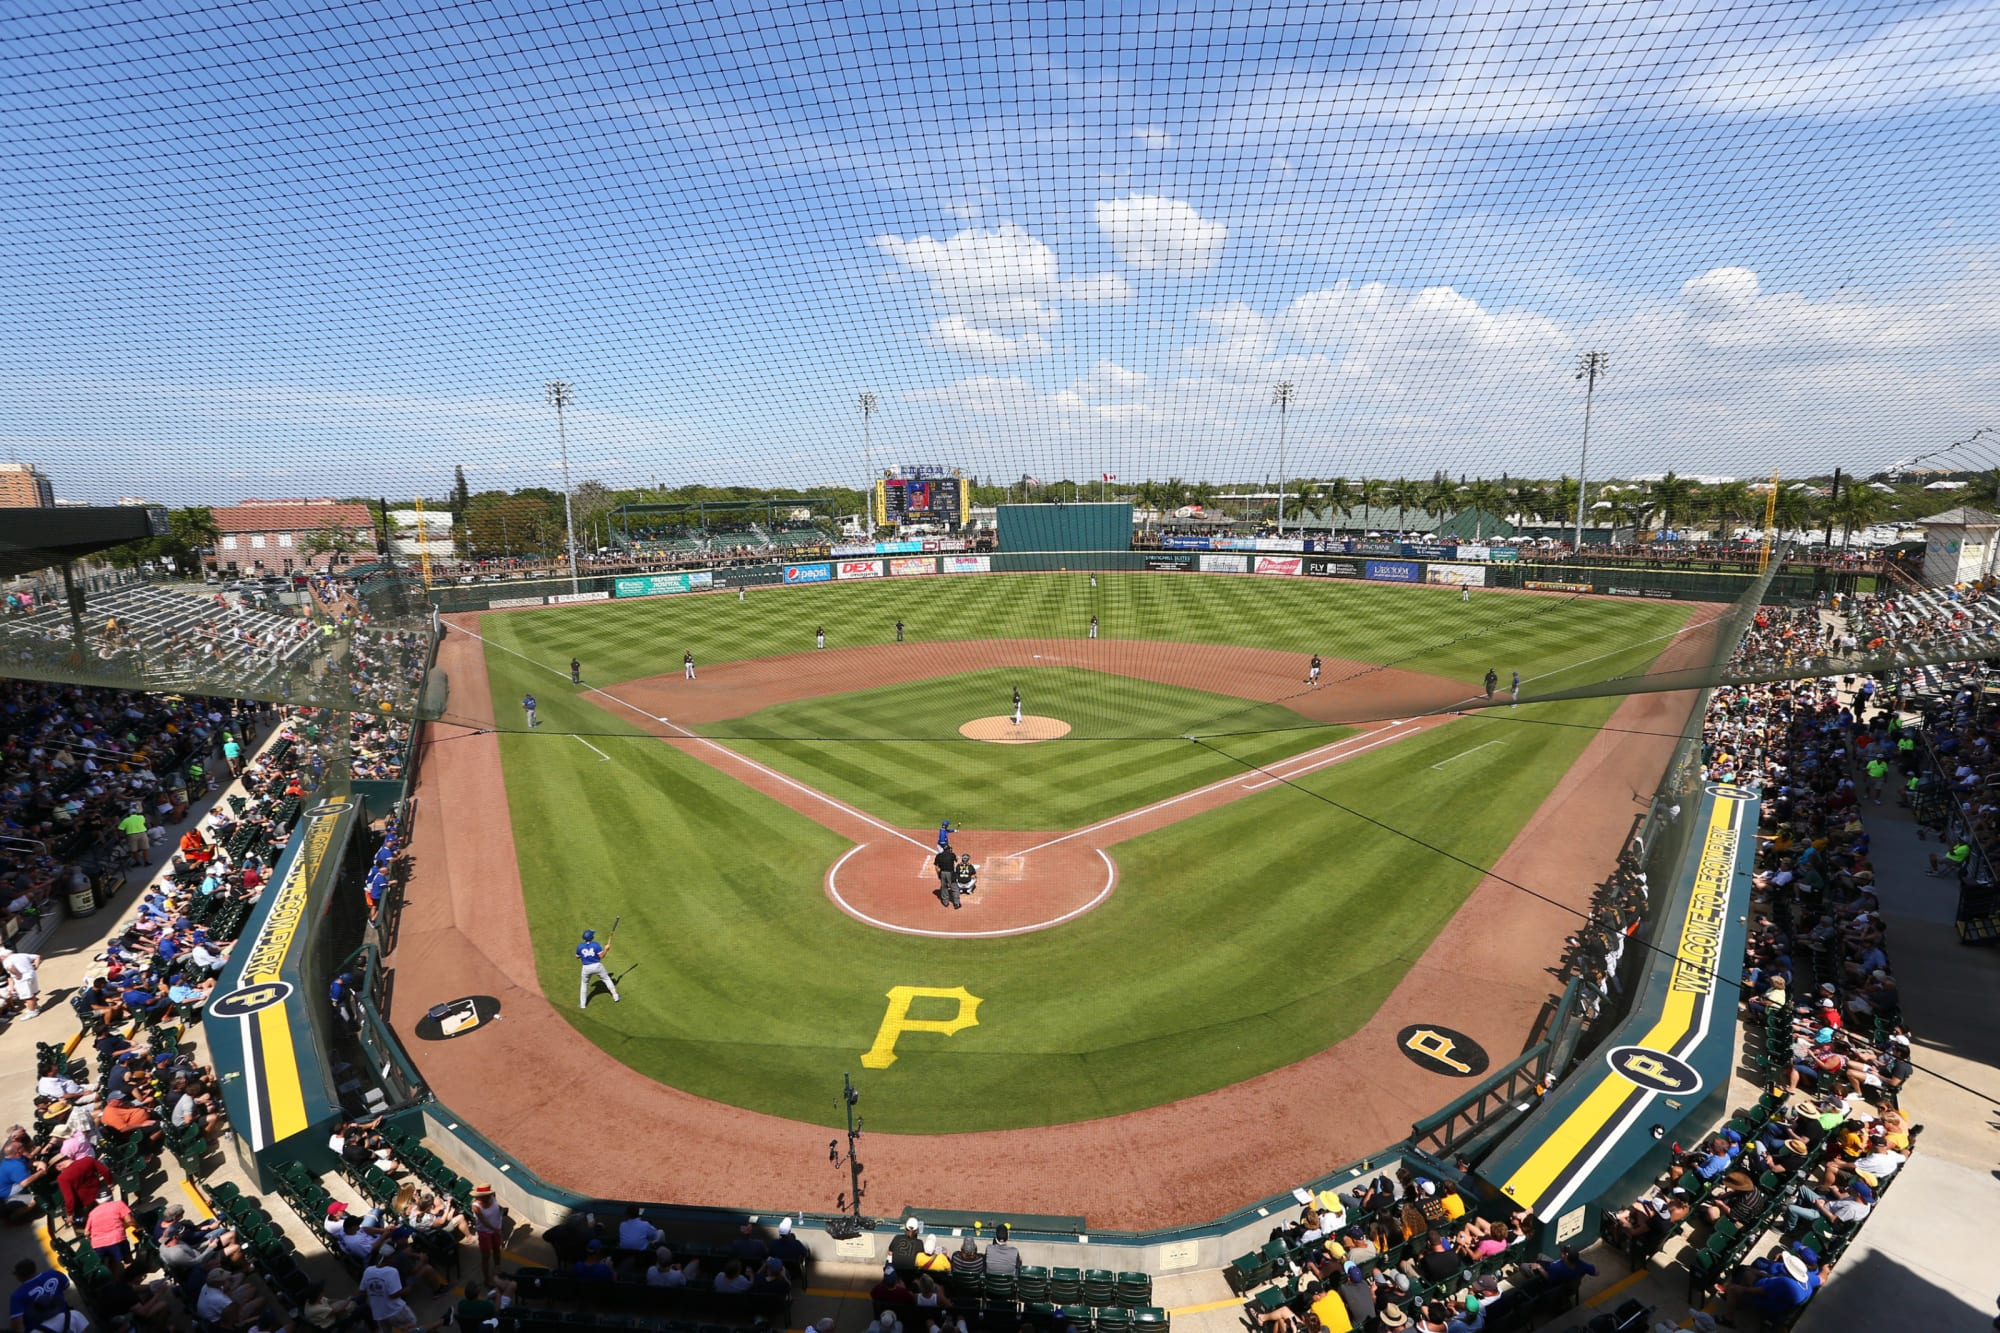 Pittsburgh Pirates 2021 Outlook: Pitcher Max Kranick